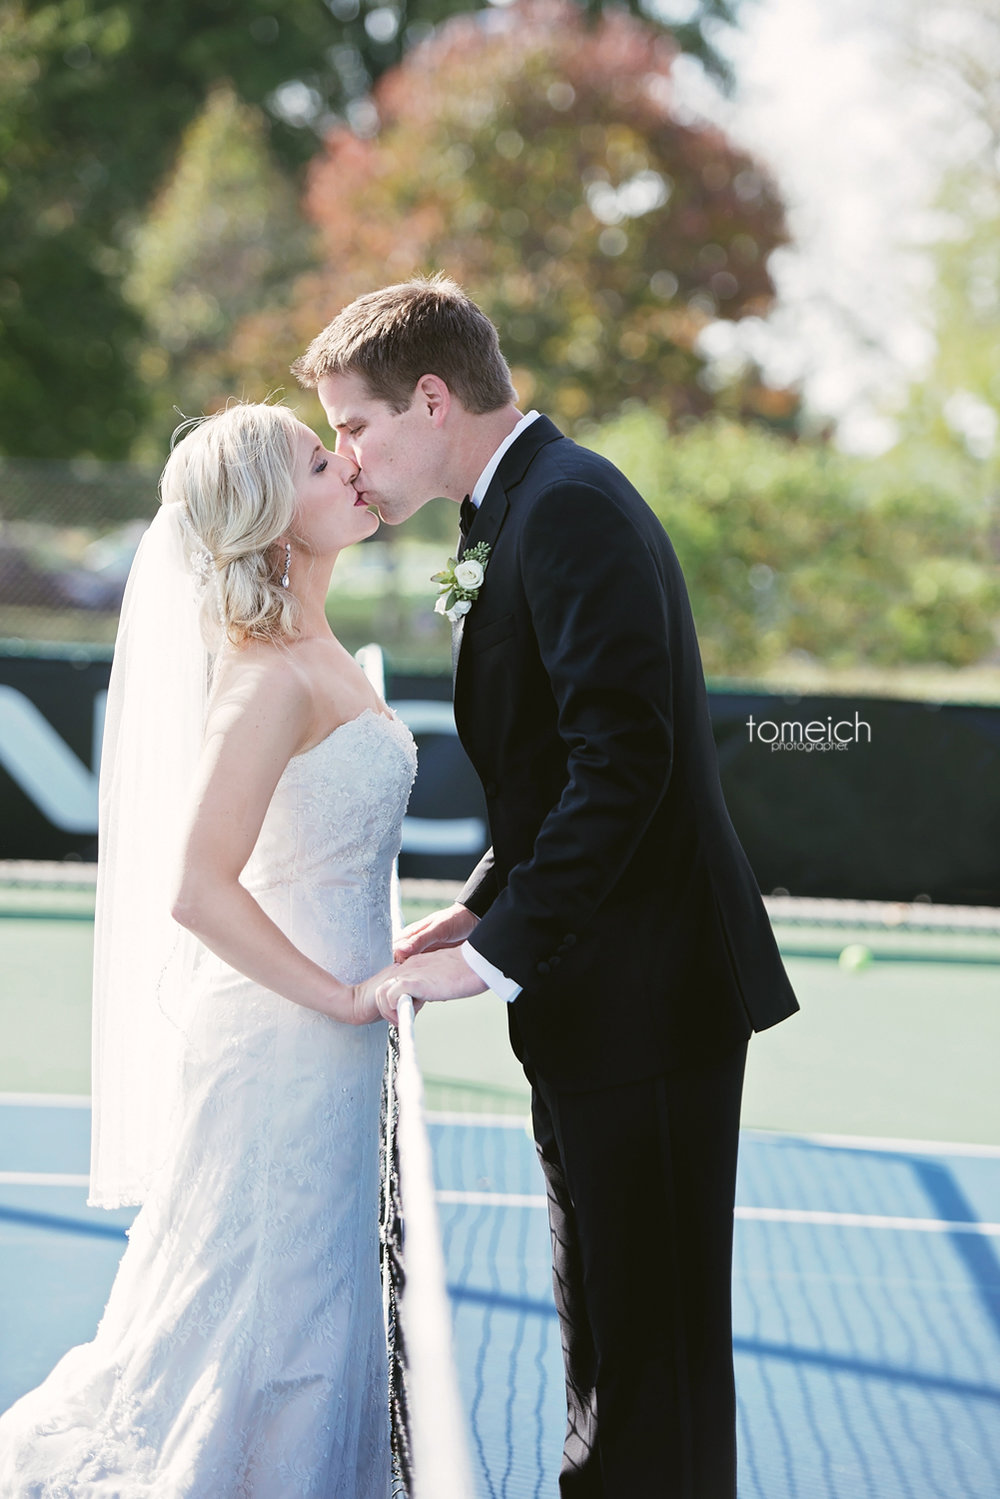 kissing at the tennis court